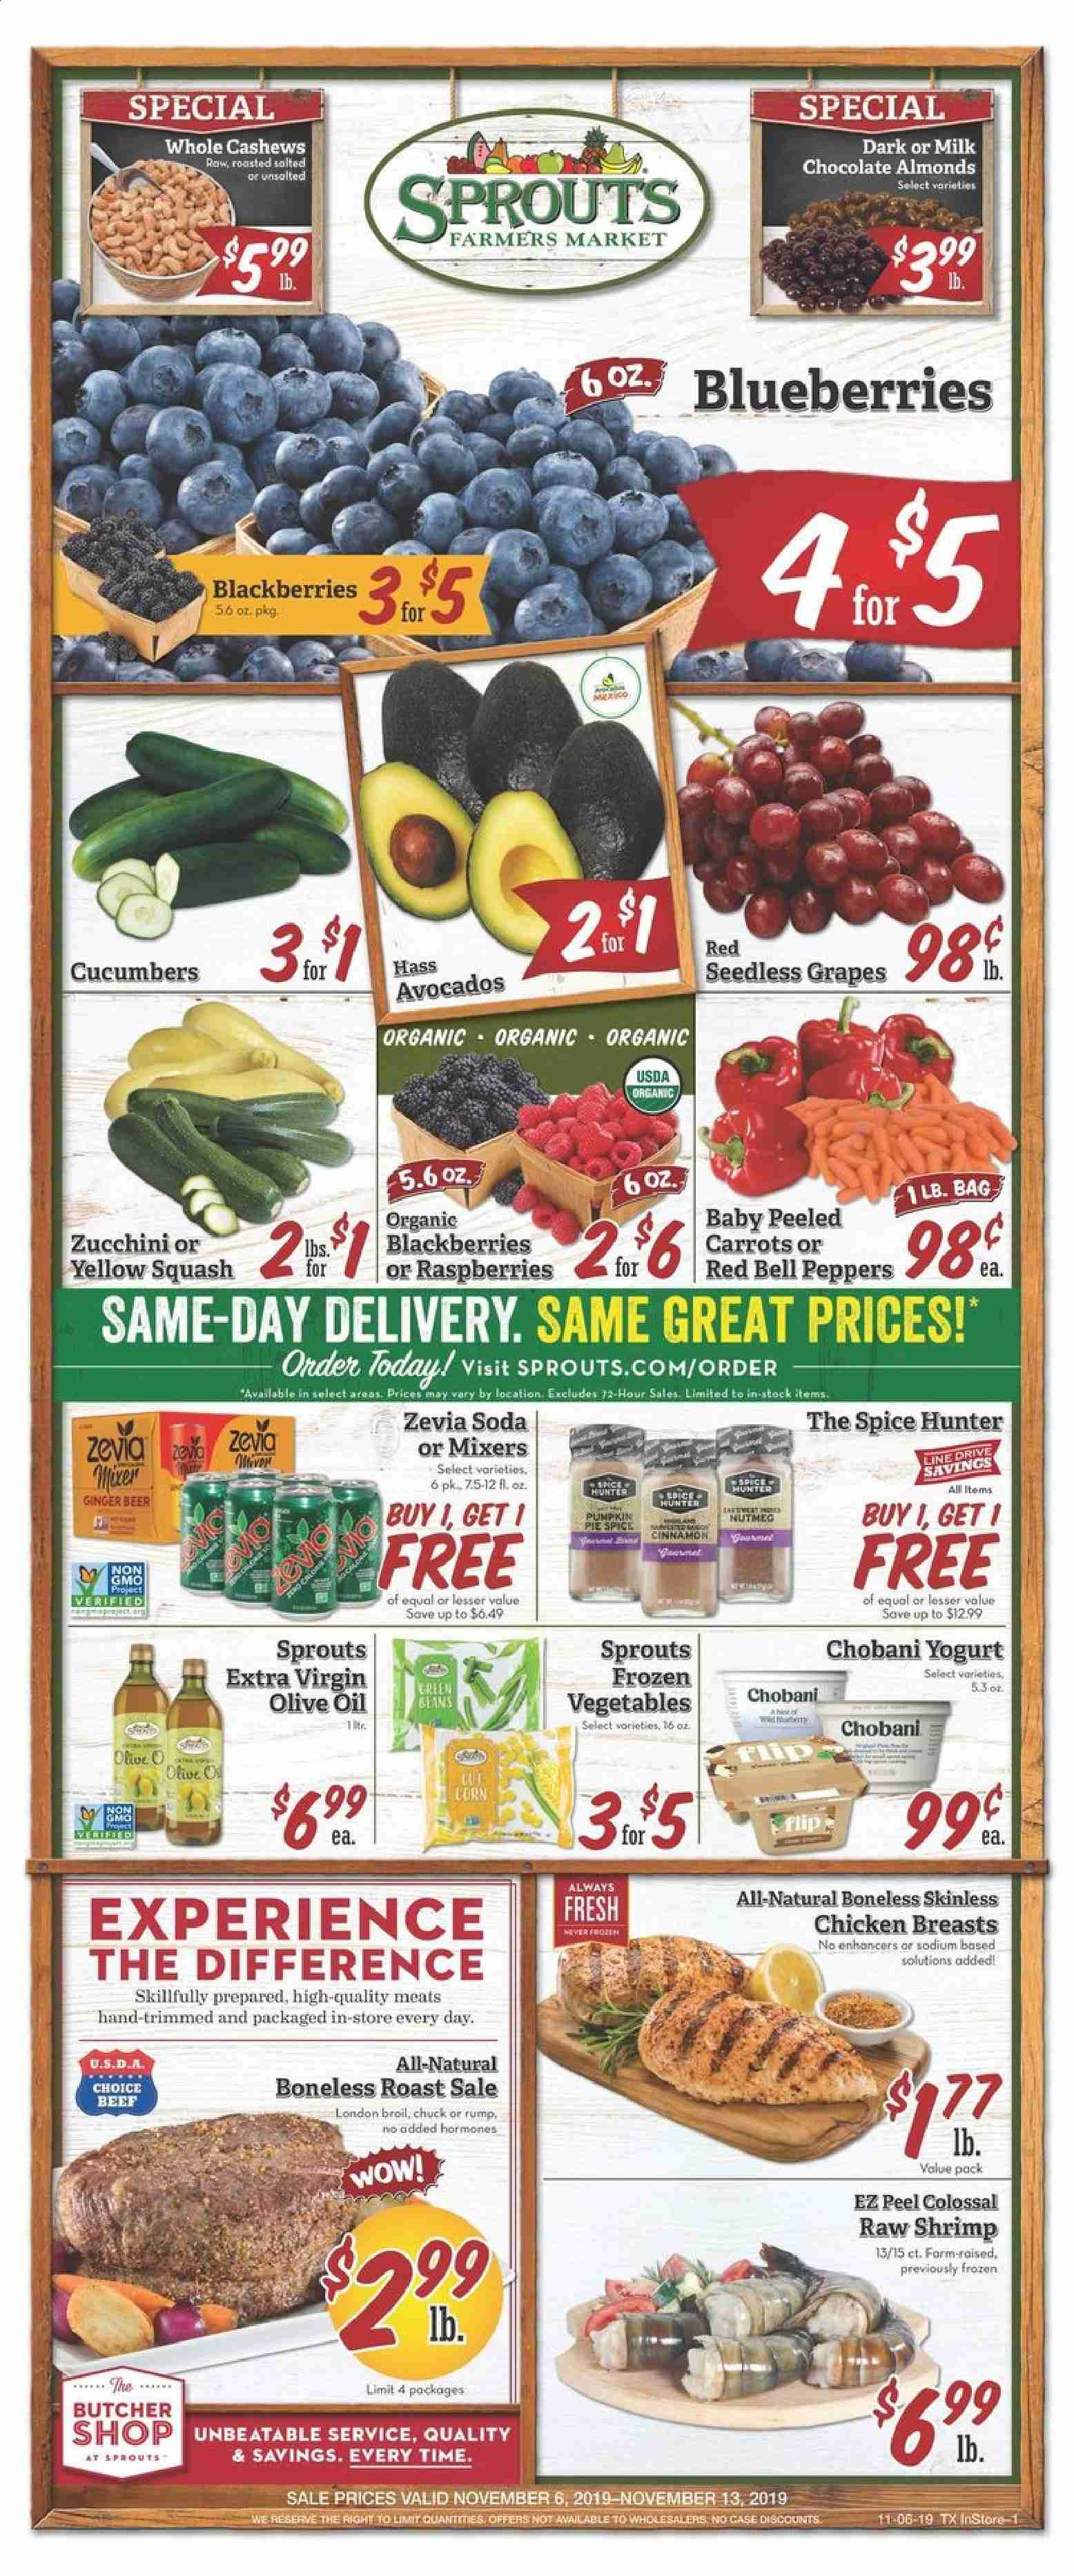 Sprouts Flyer - 11.06.2019 - 11.13.2019 - Sales products - ginger beer, bell peppers, carrots, cucumbers, ginger, squash, zucchini, pumpkin, peppers, avocado, blackberries, blueberries, grapes, raspberries, seedless grapes, pie, shrimps, beans, milk chocolate, chocolate, extra virgin olive oil, olive oil, almonds, cashews, soda, chicken, chicken breast, beef meat, Frozen, Hunter. Page 1.